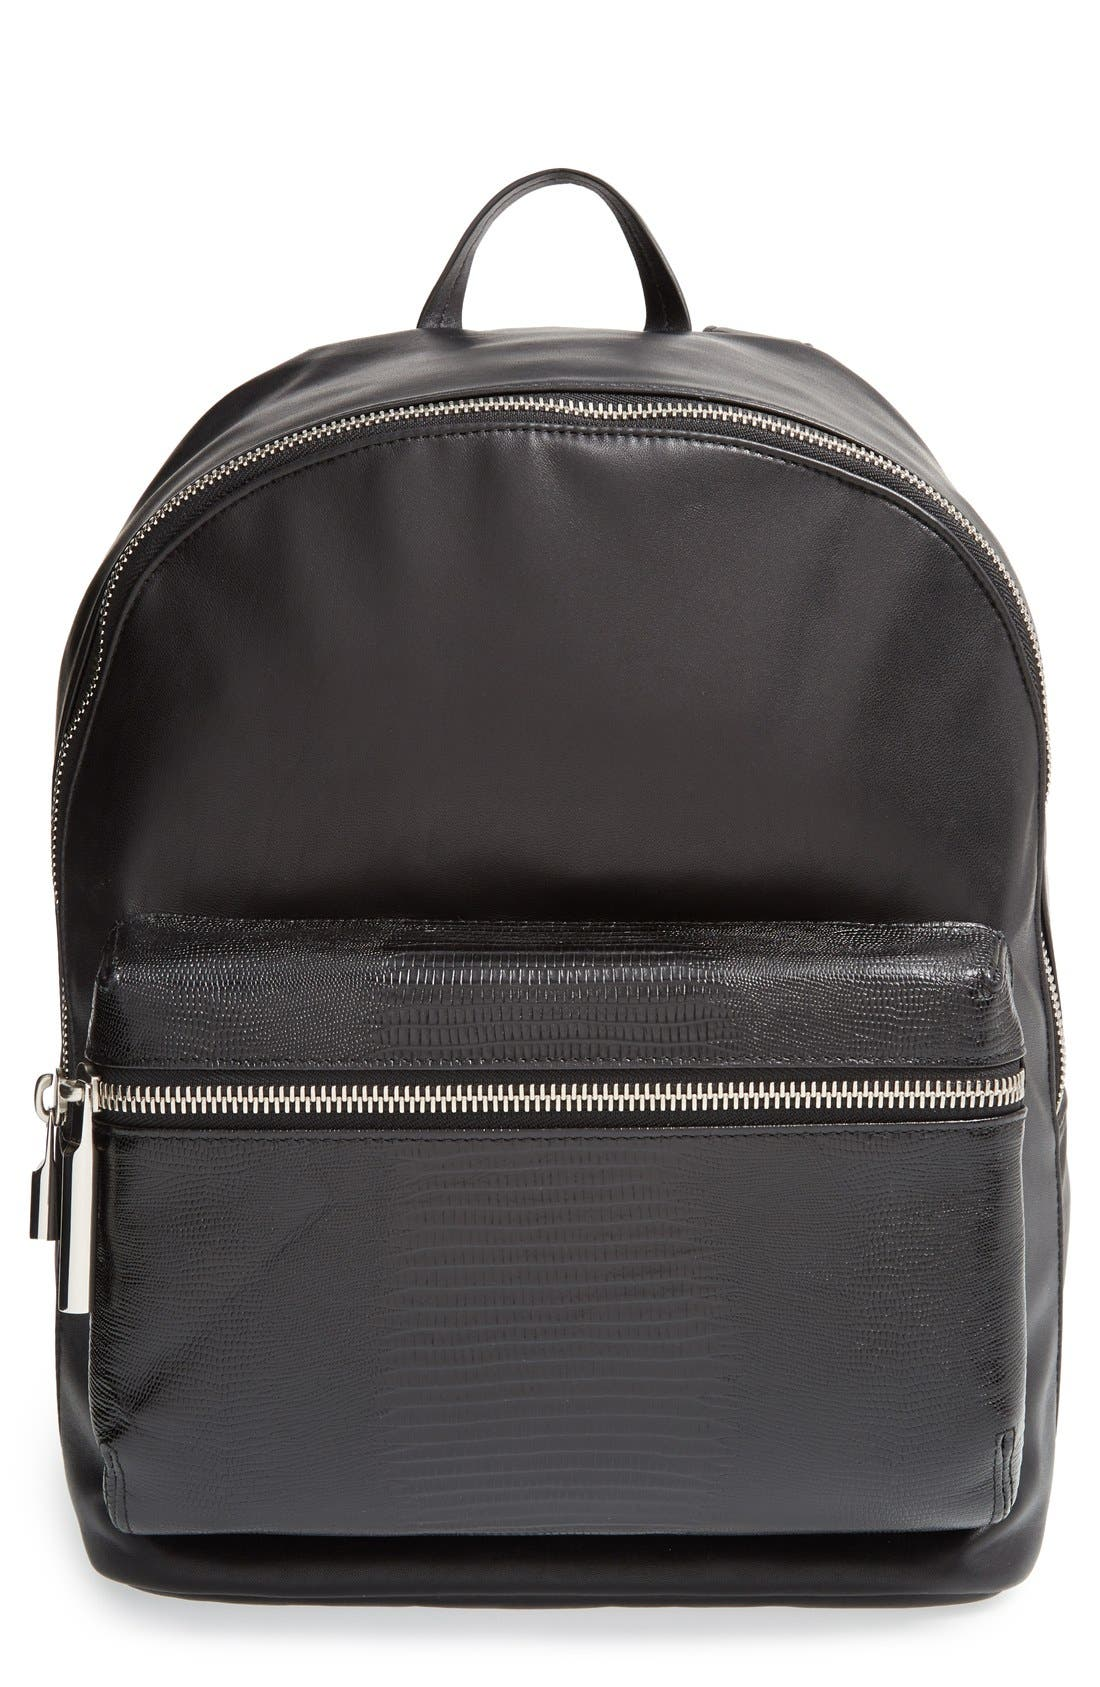 Main Image - Elizabeth and James 'Cynnie' Lizard Embossed Leather Backpack